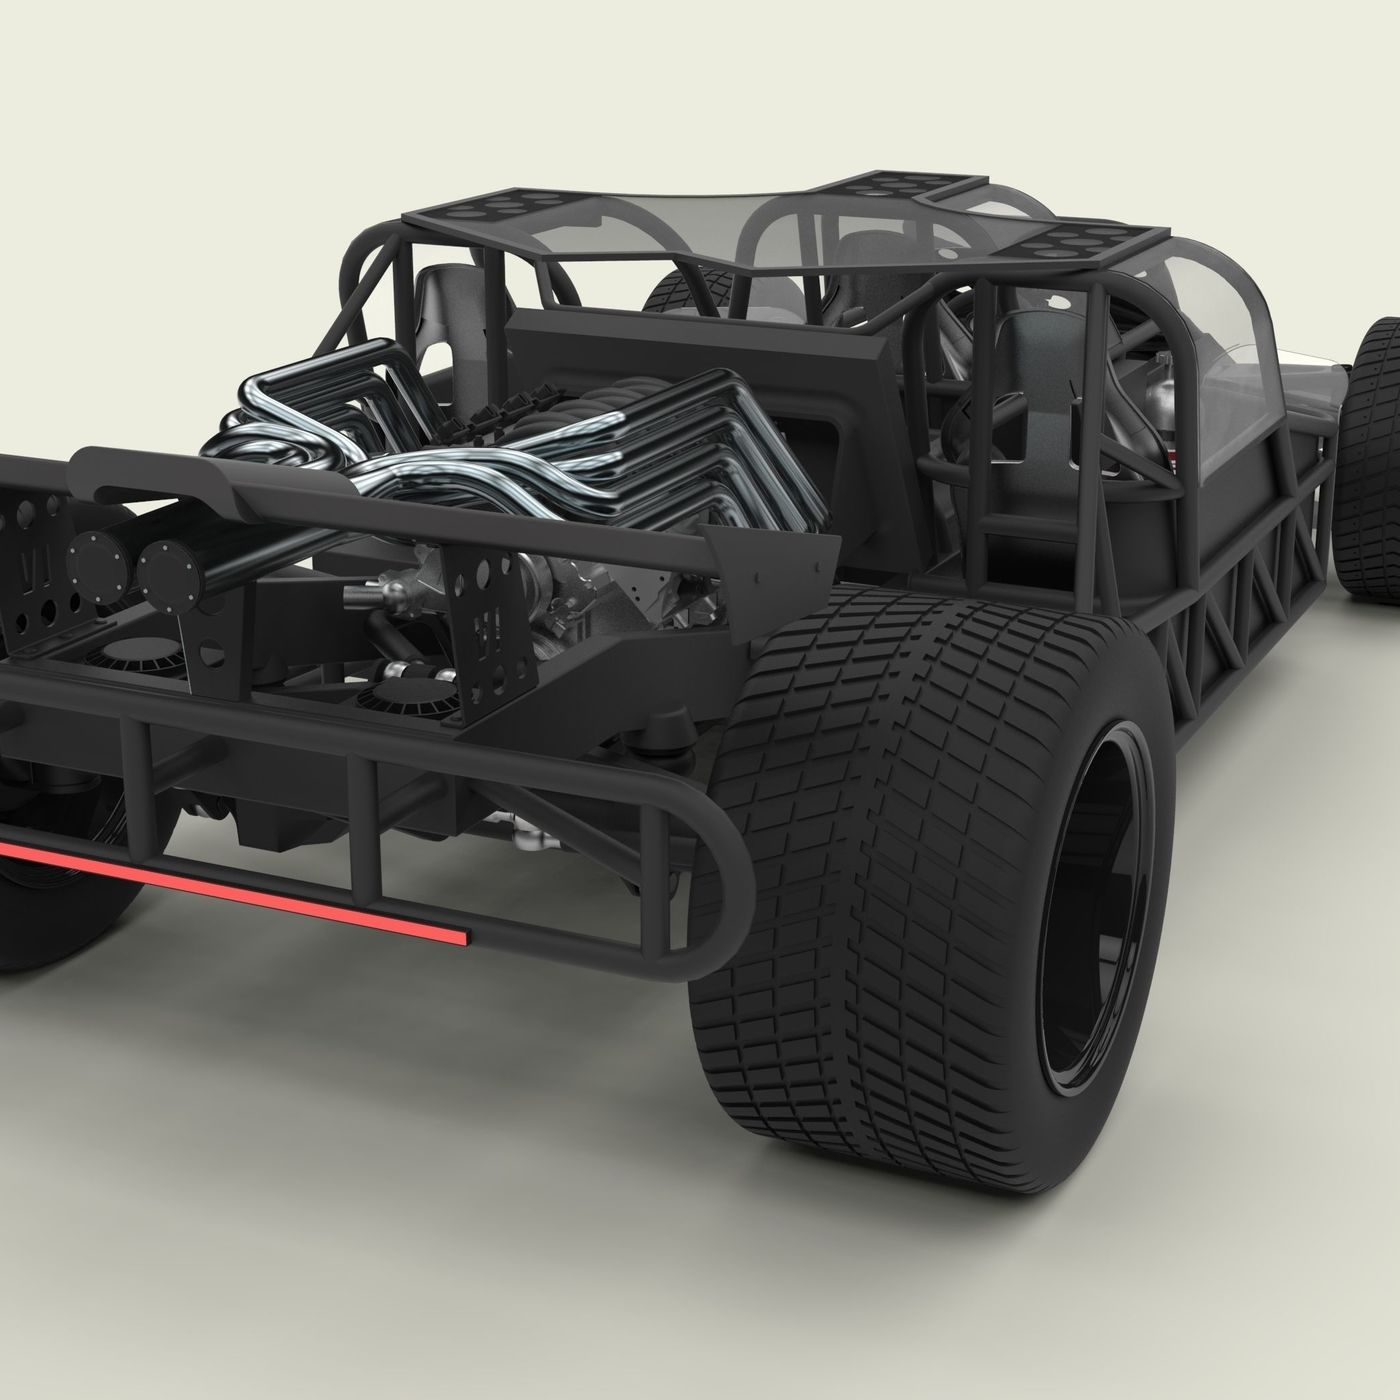 Flip car from Fast and Furious 6